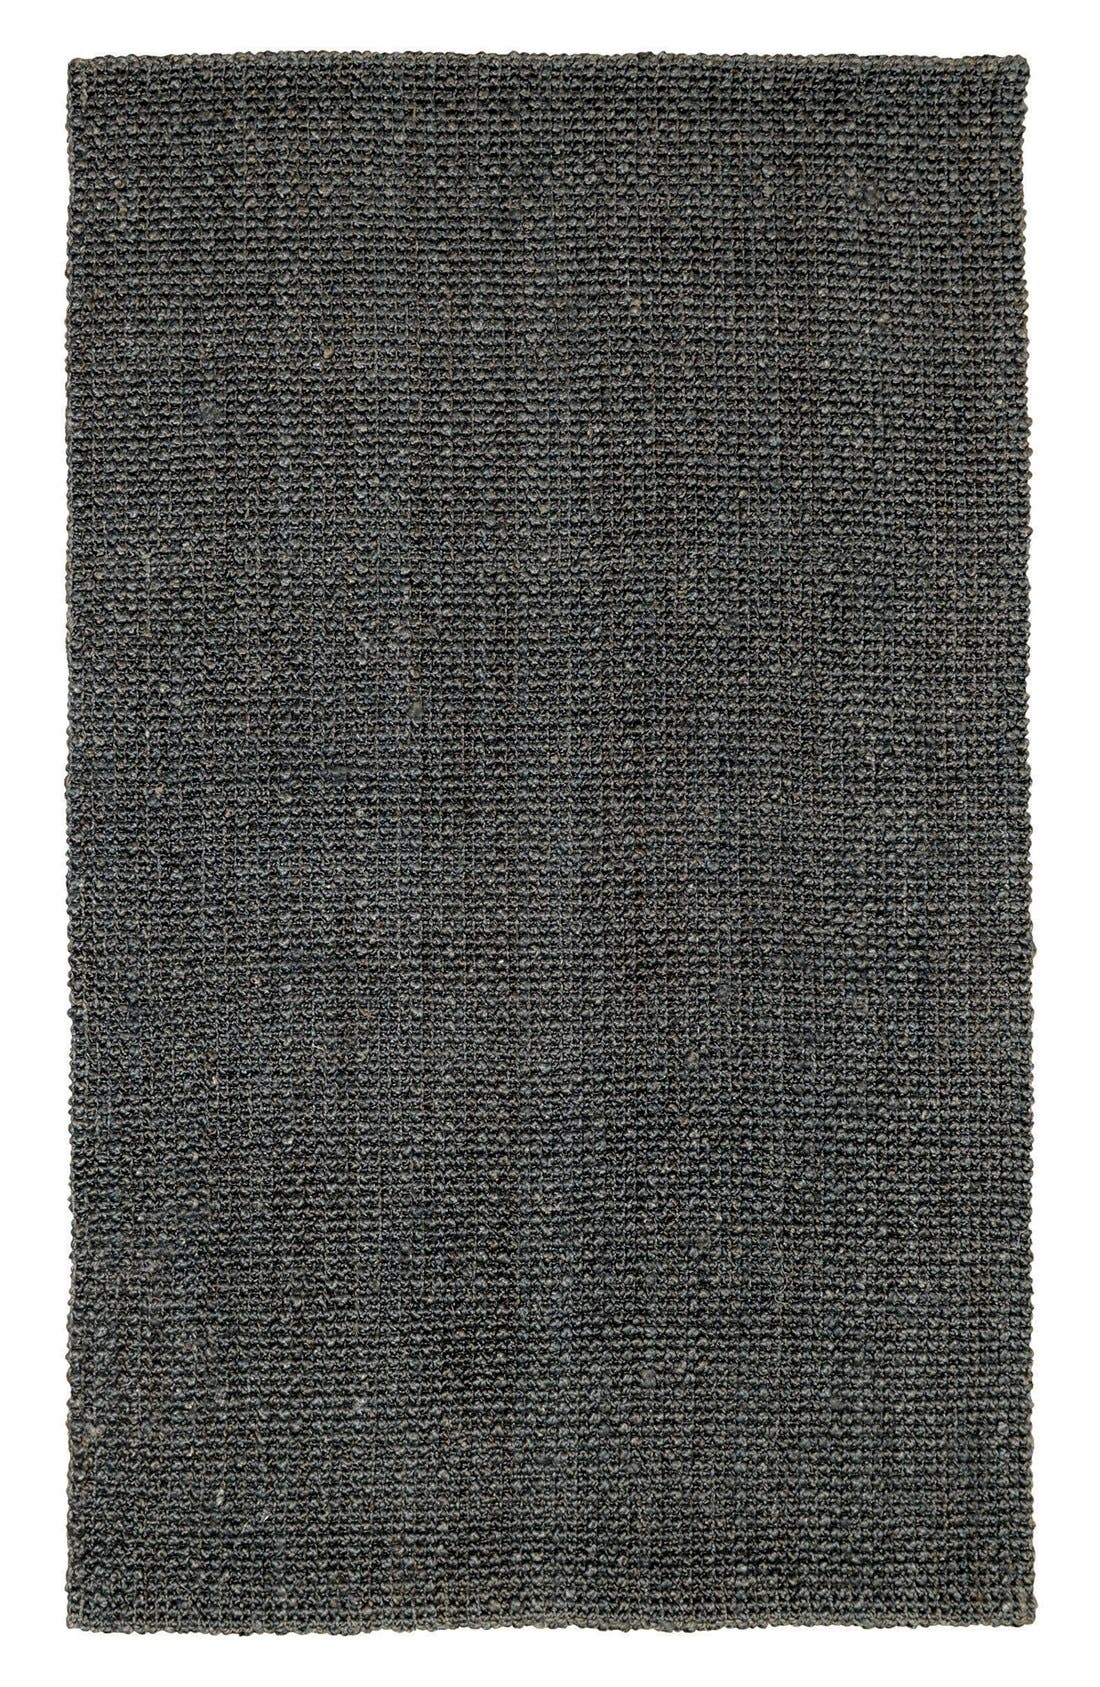 Main Image - Villa Home Collection Knobby Loop Handwoven Rug